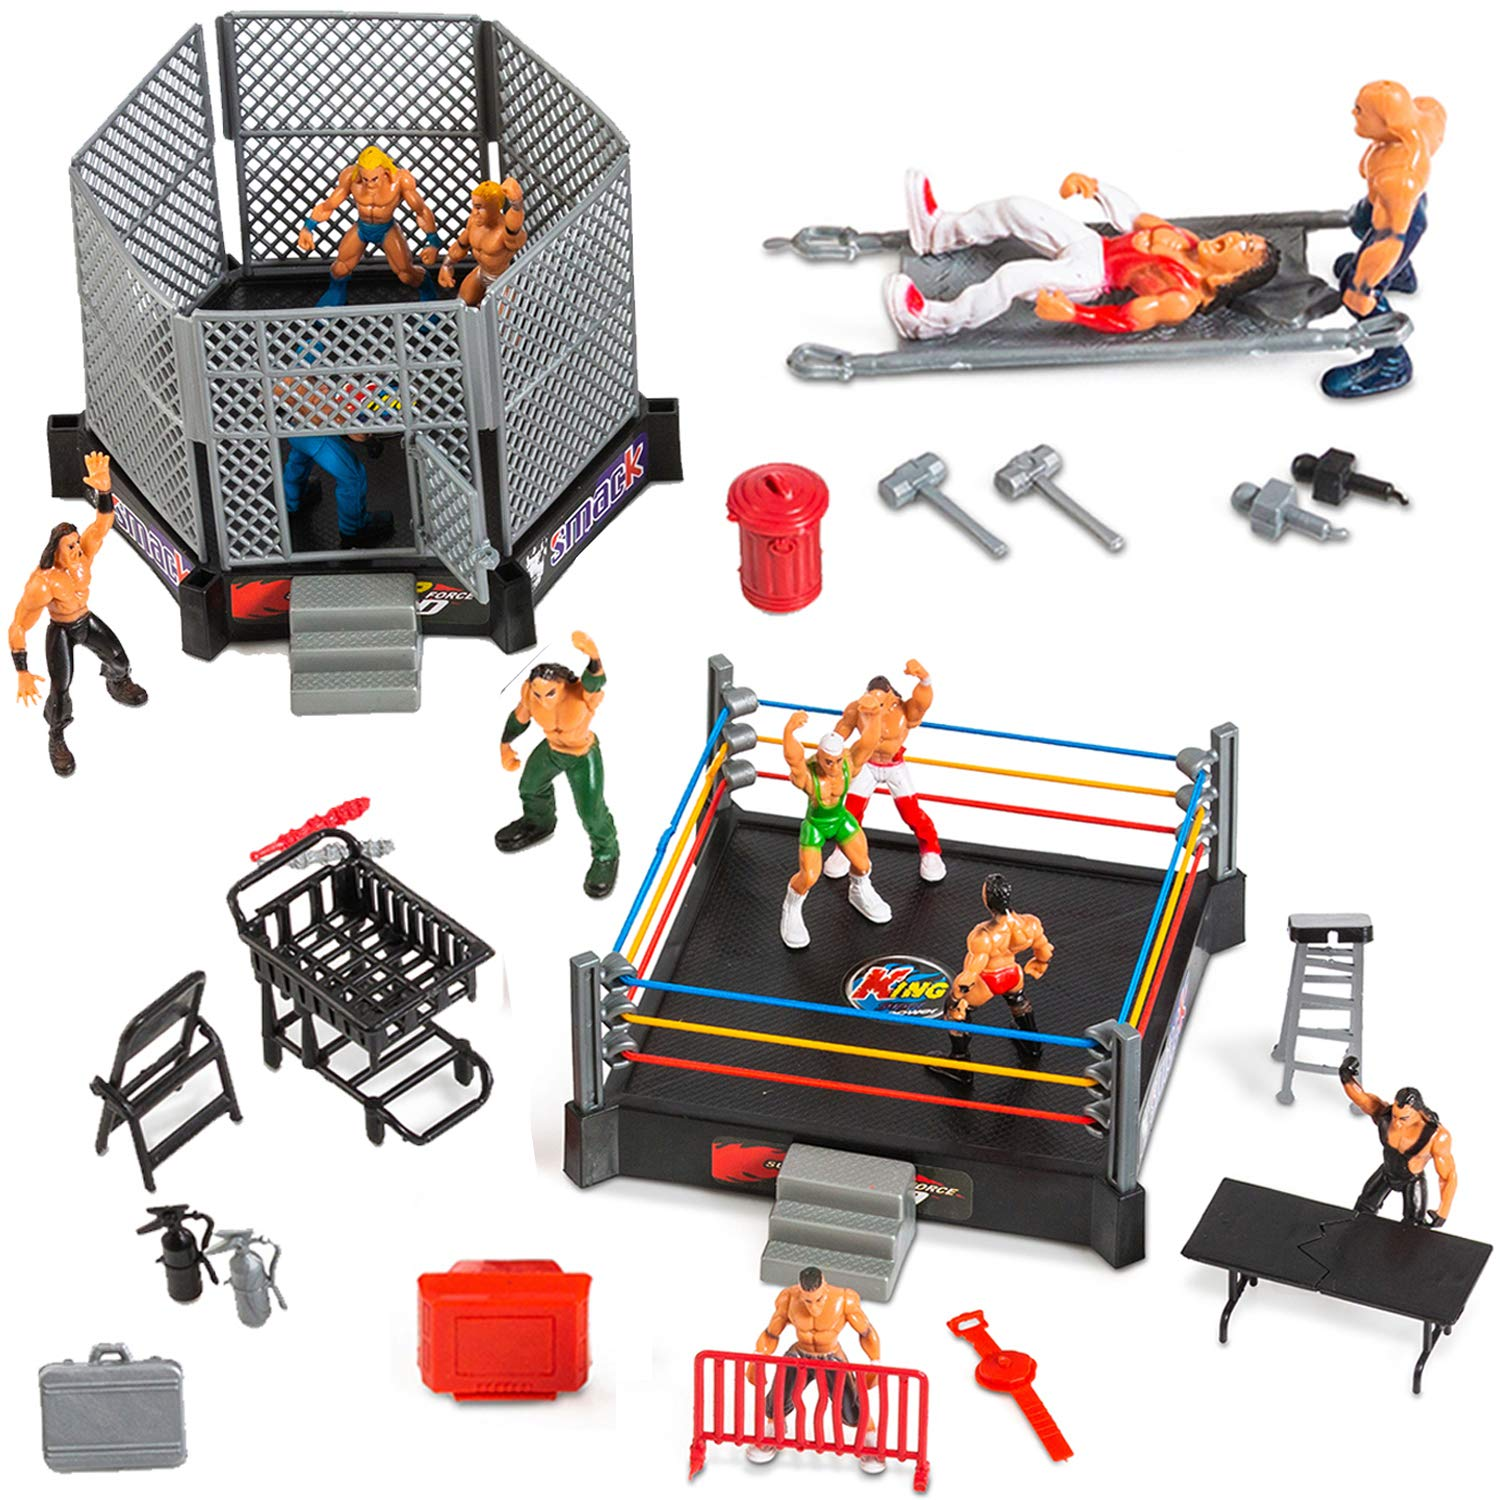 Wrestling Toys For Kids WWE Action Figures Elite Wrestlers Warriors Toys Undertake Ring & Realistic Accessories Fun Miniature